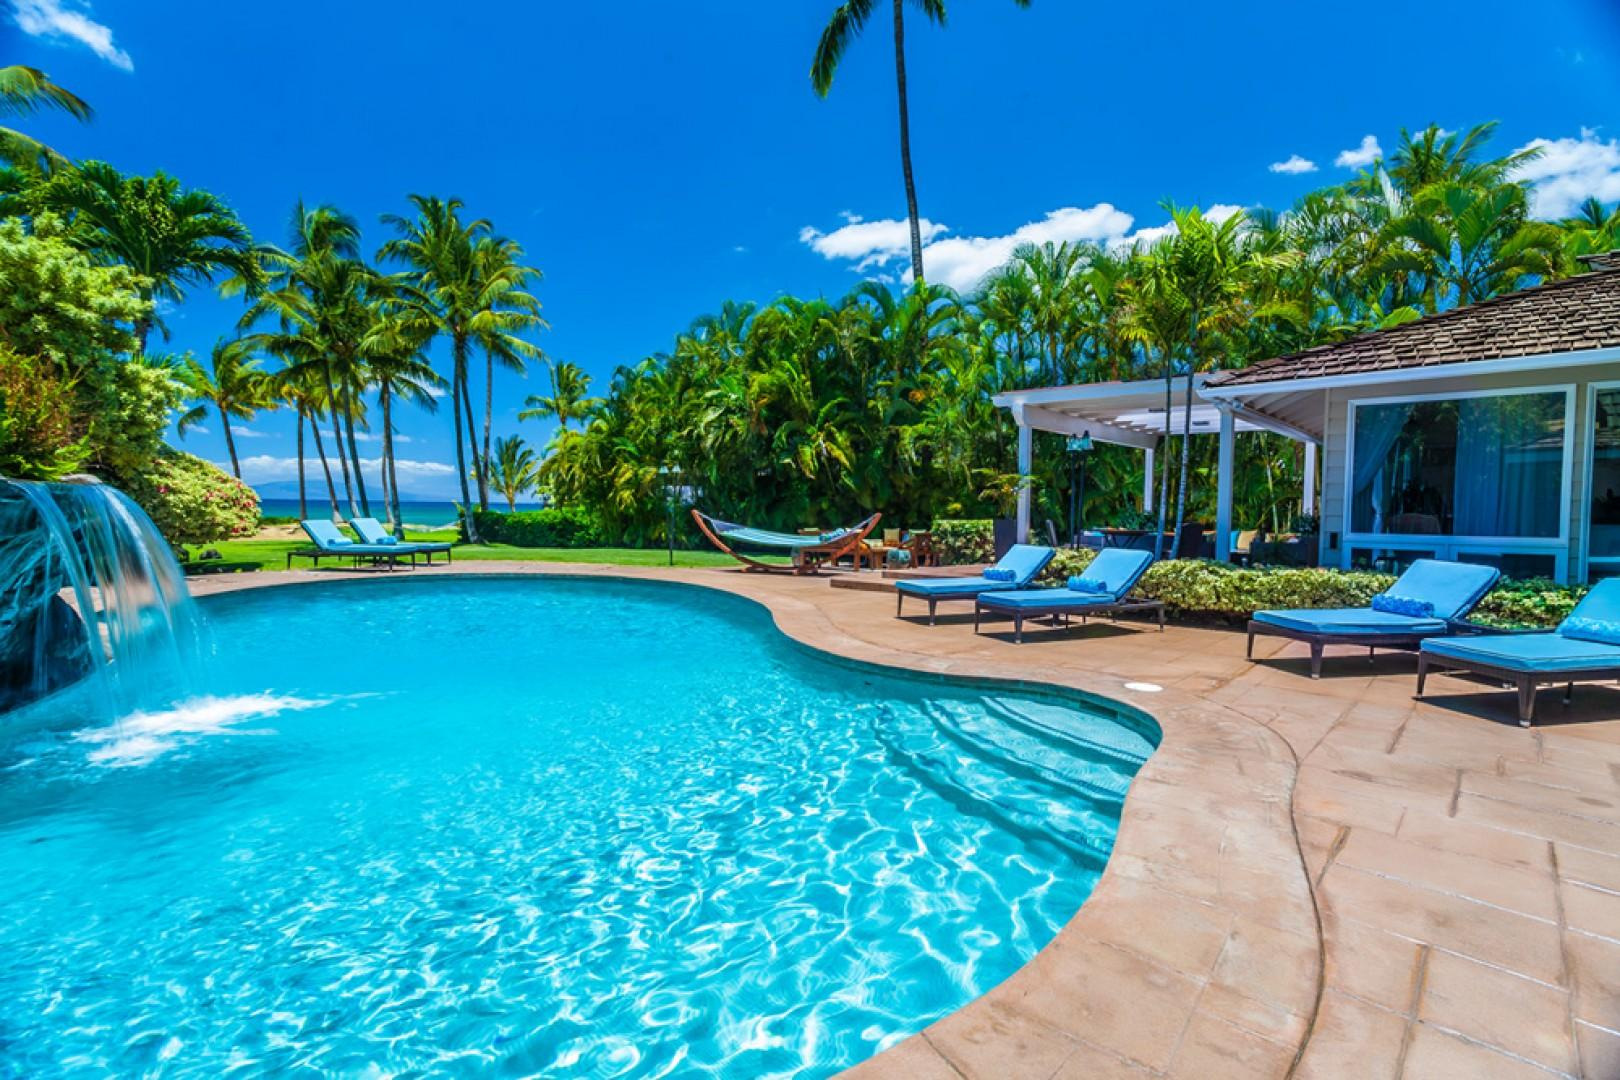 Mango Surf - Large Heated Swimming Pool with Ocean View, Waterfall, Hammocks, Outdoor Living Space